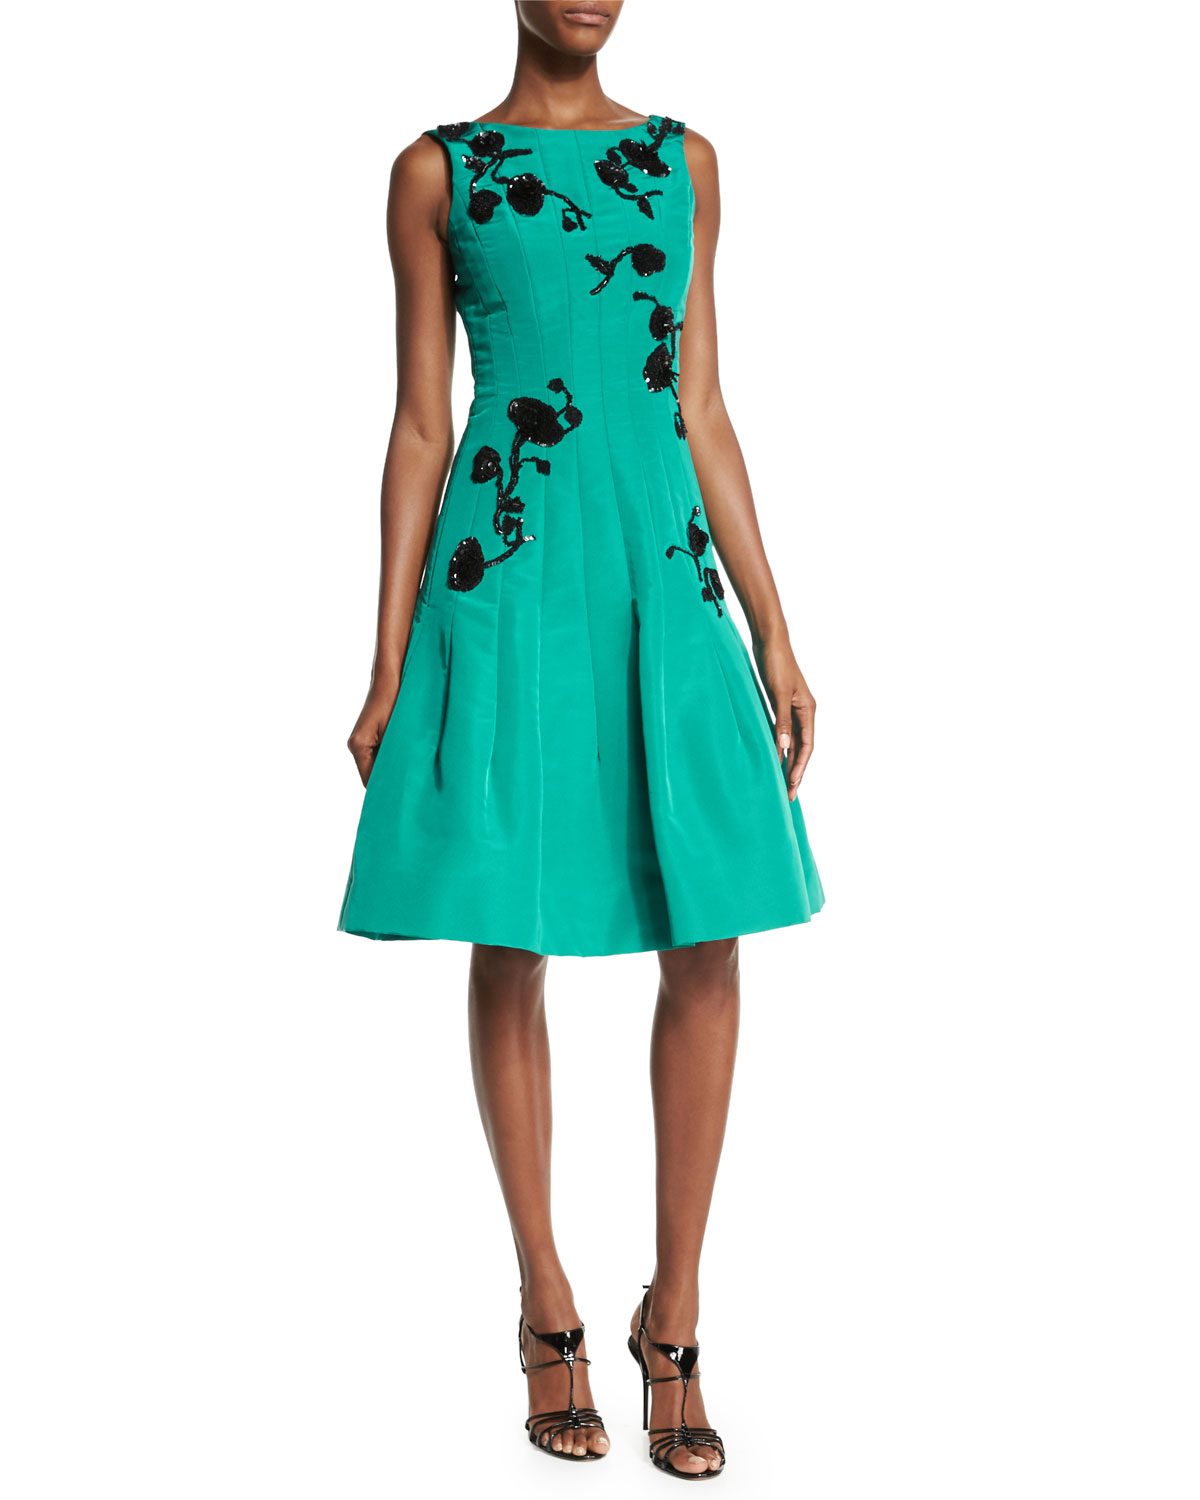 Sleeveless Sequined-Floral Motif Dress, Teal